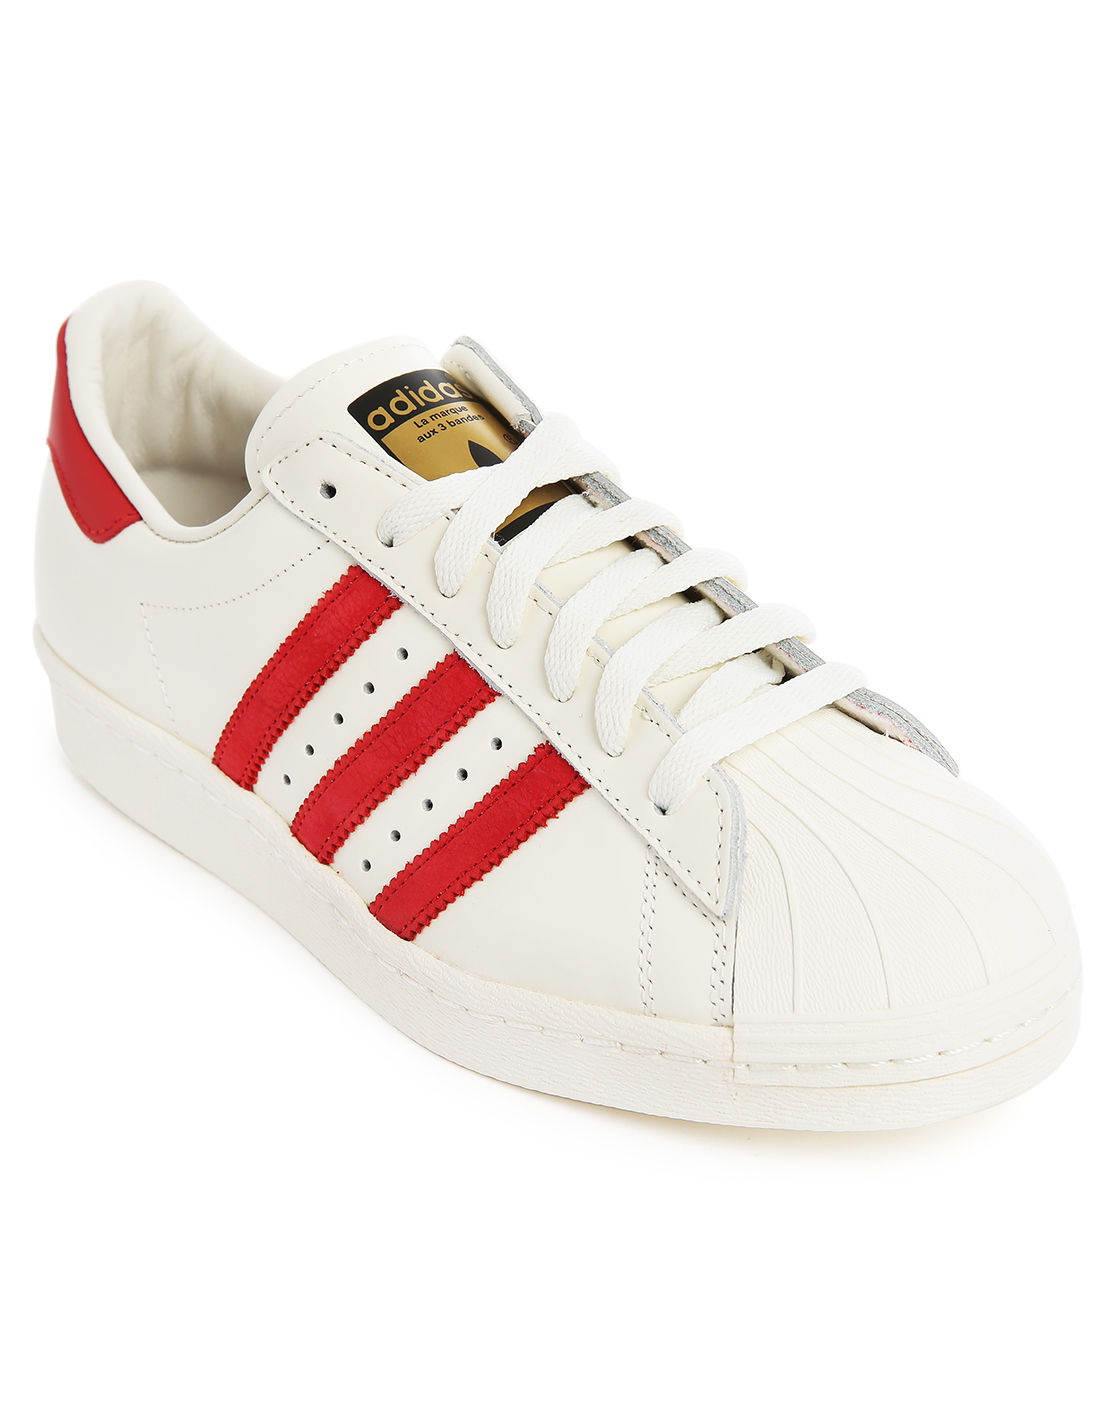 Adidas white and red superstar 80s deluxe in white for men lyst